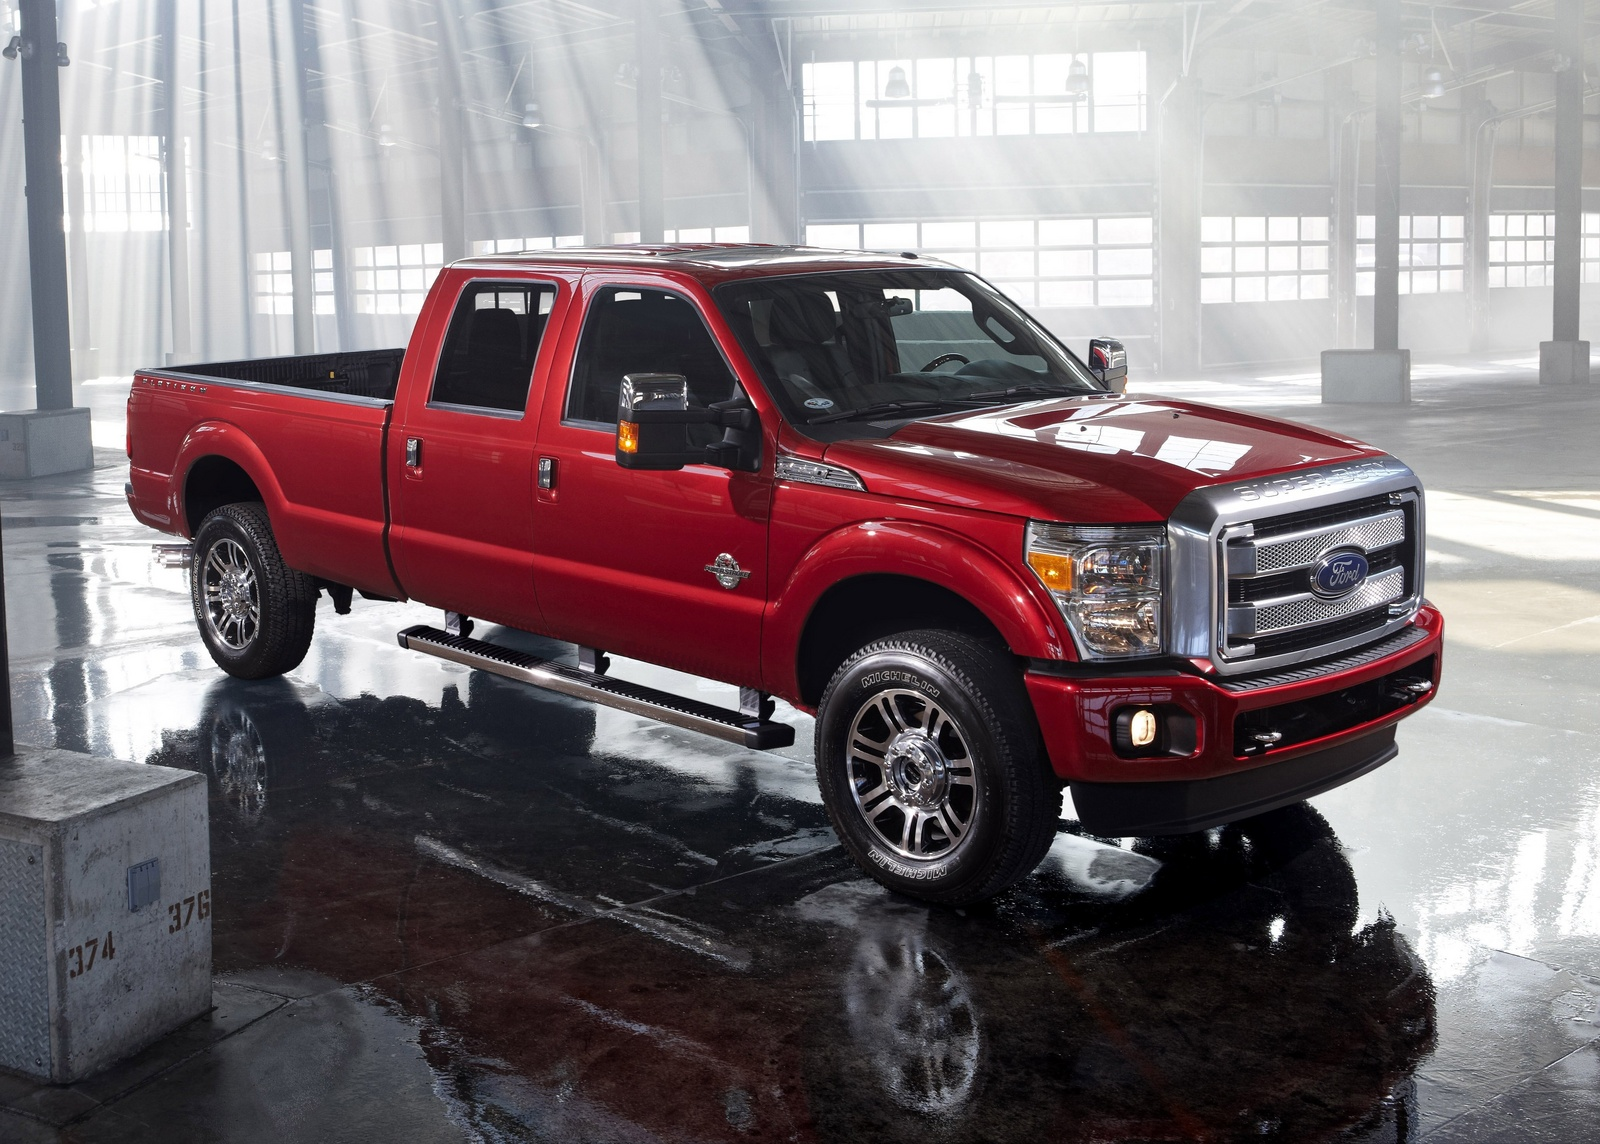 Ford F-350 Super Duty #21